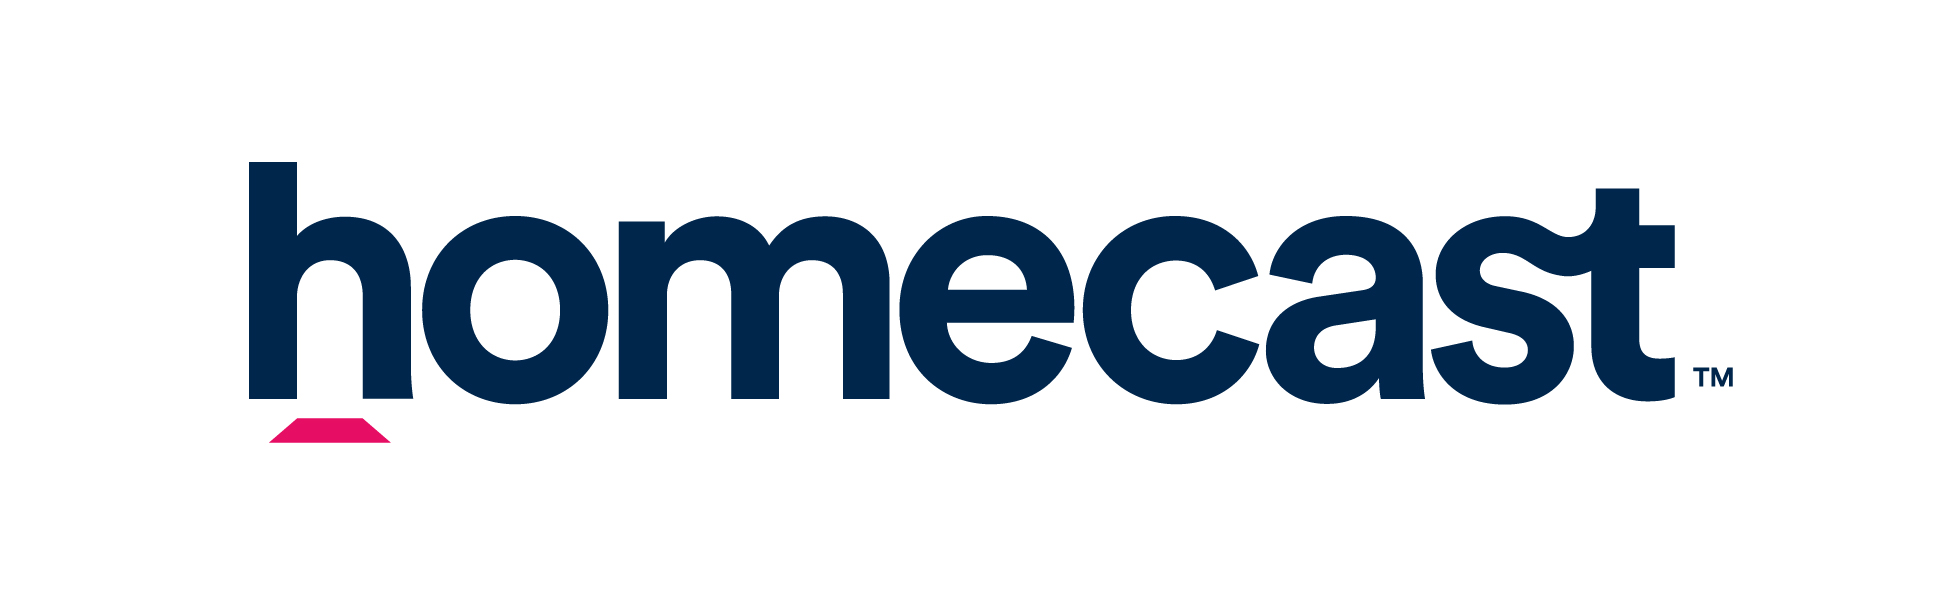 homecast%20tm%20logo